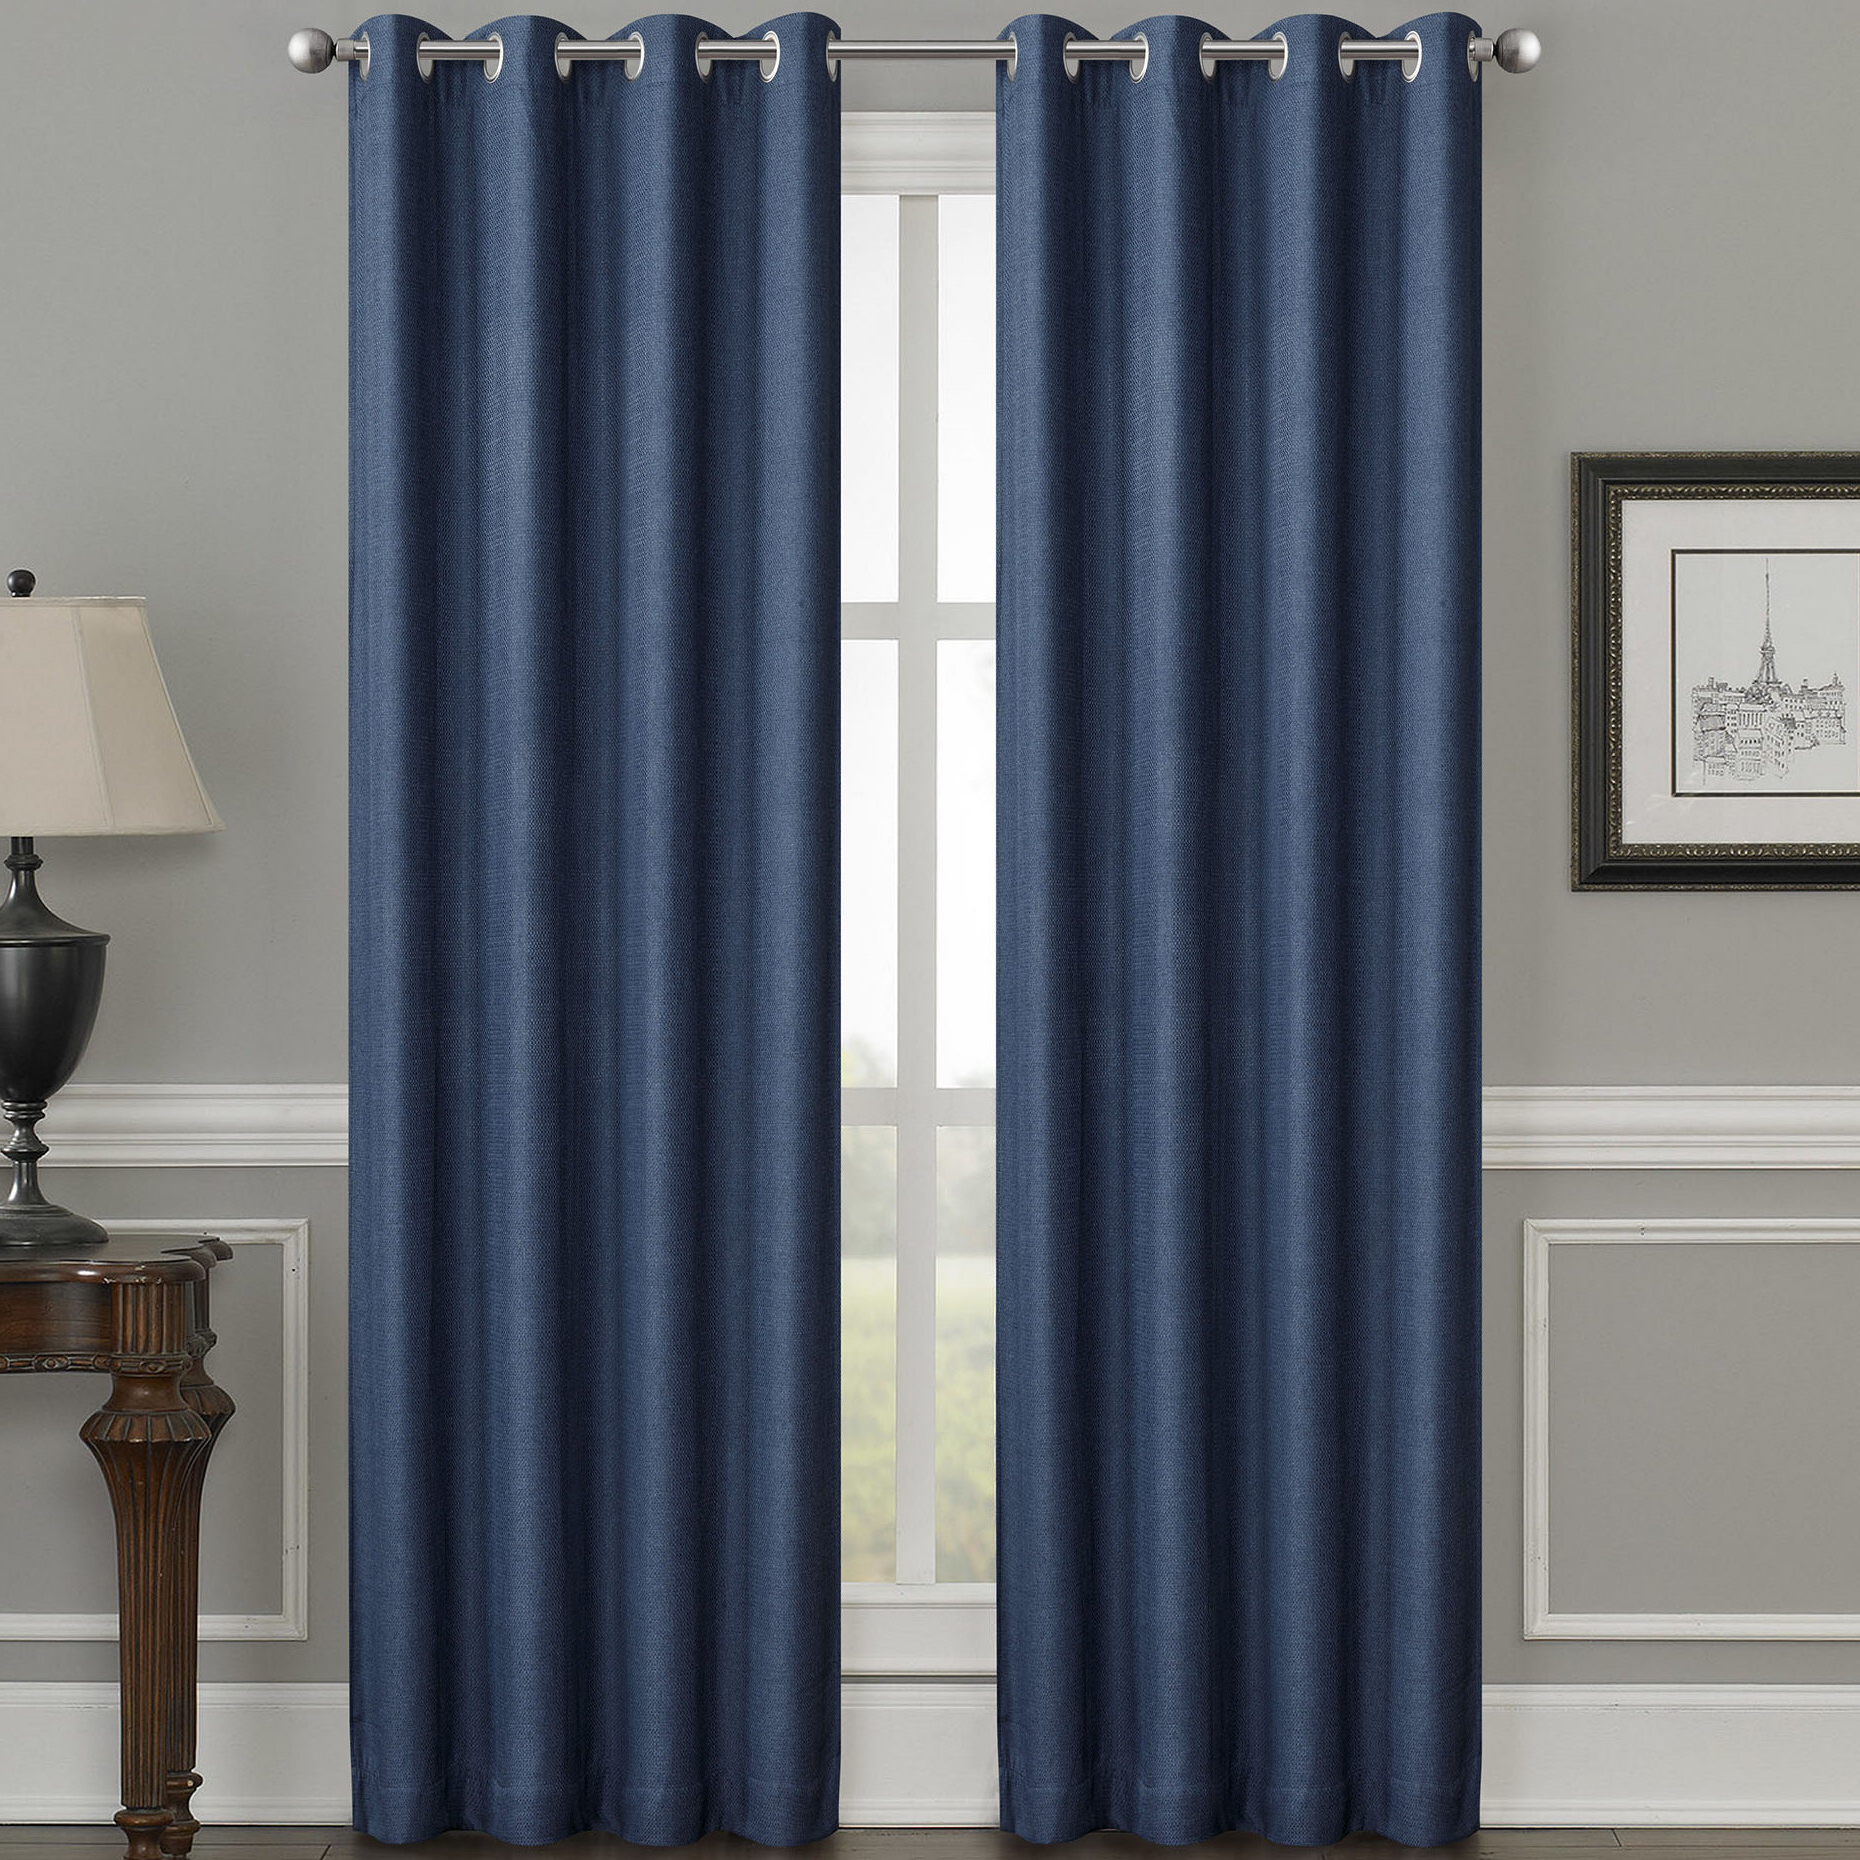 Luxury Collection Cranston Sheer Curtain Panel Pairs For Popular Moravian Weave Solid Room Darkening Thermal Grommet Single Curtain Panel (View 18 of 20)